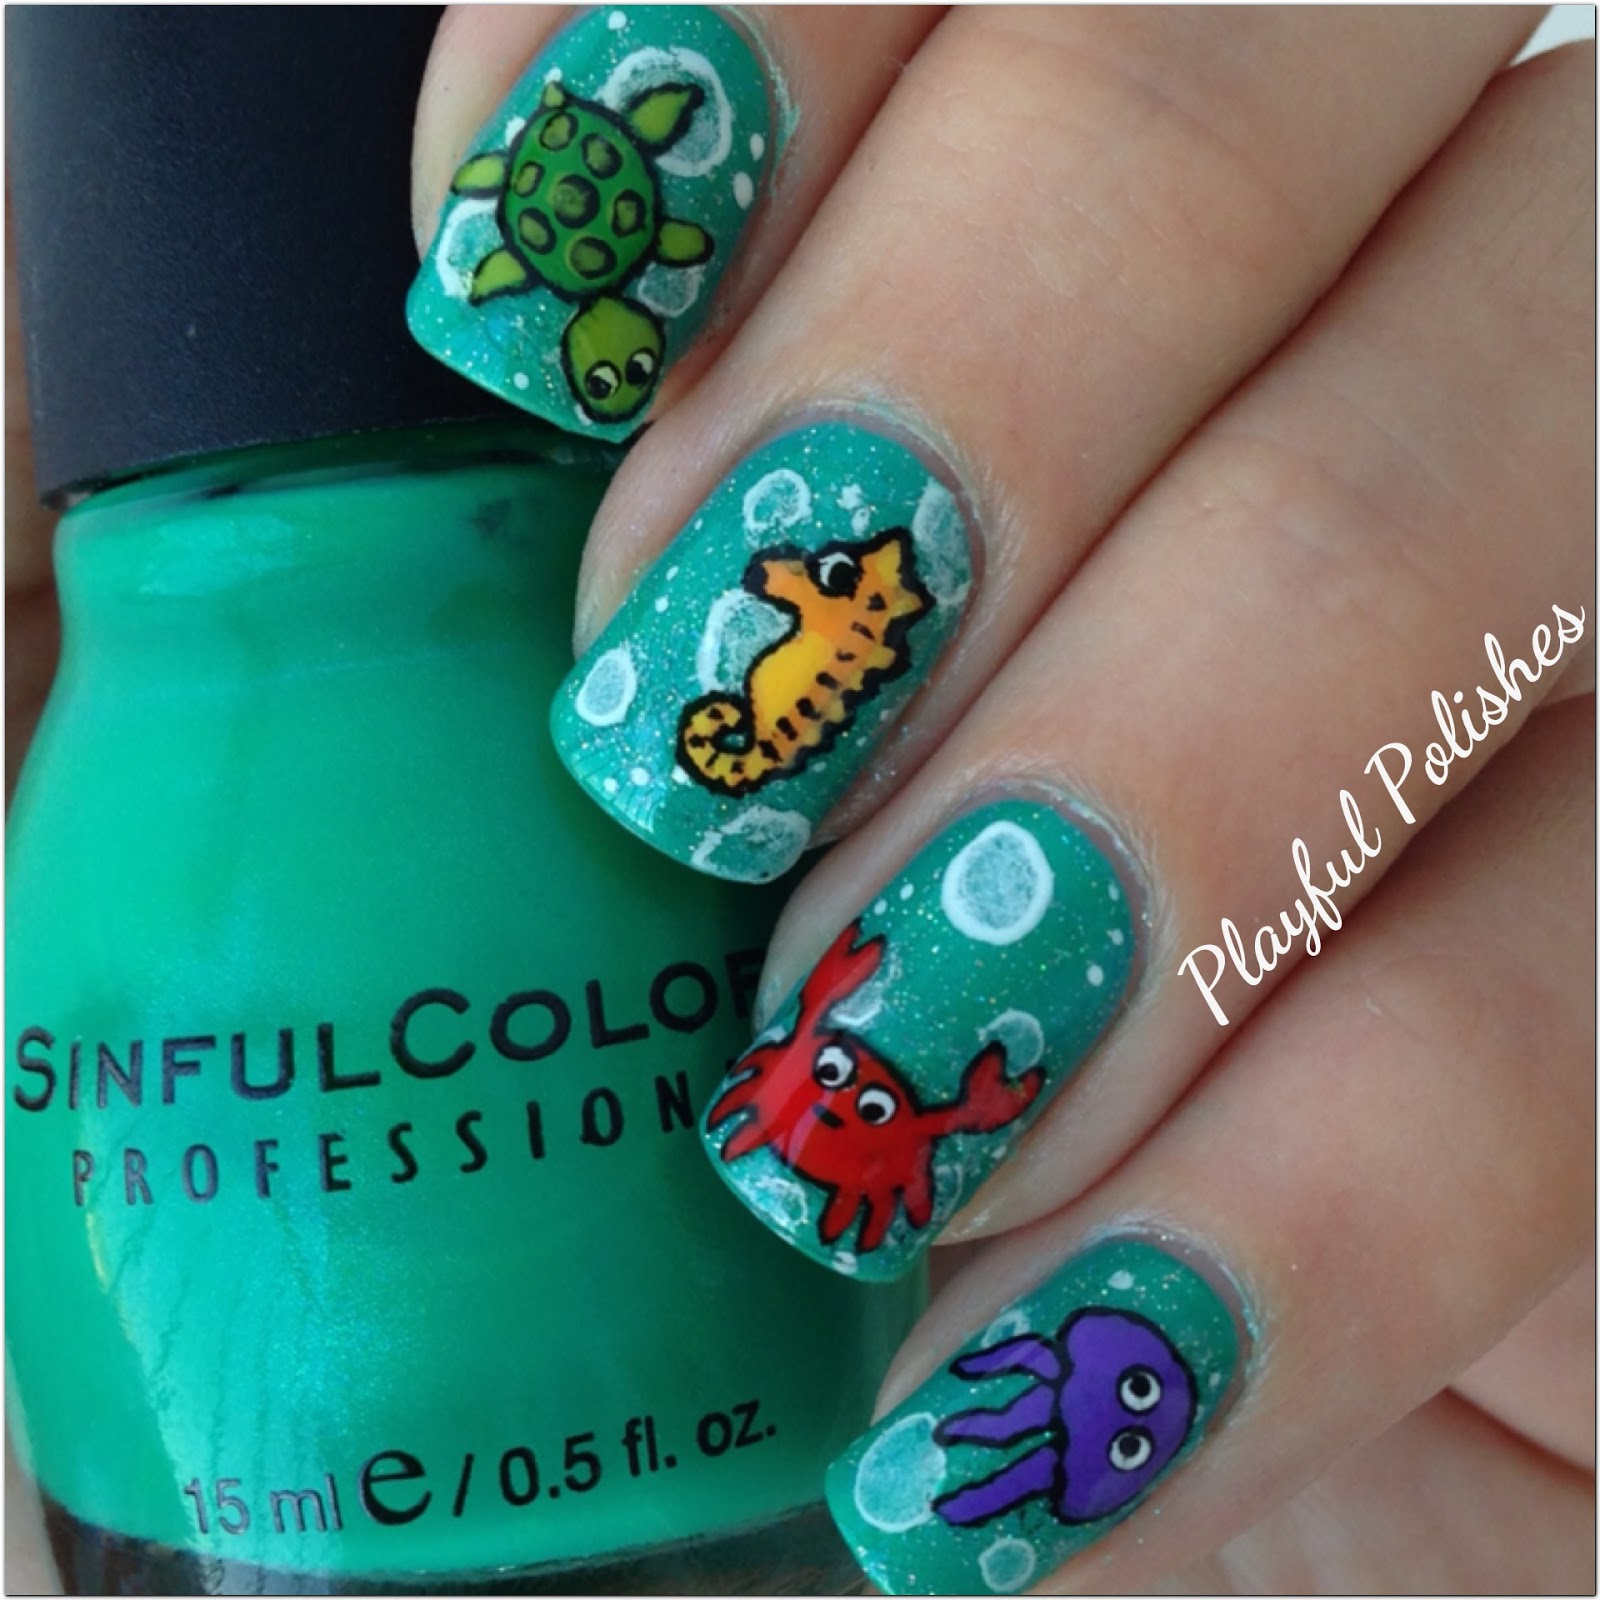 Playful Polishes: JUNE NAIL ART CHALLENGE: SEA CRITTERS